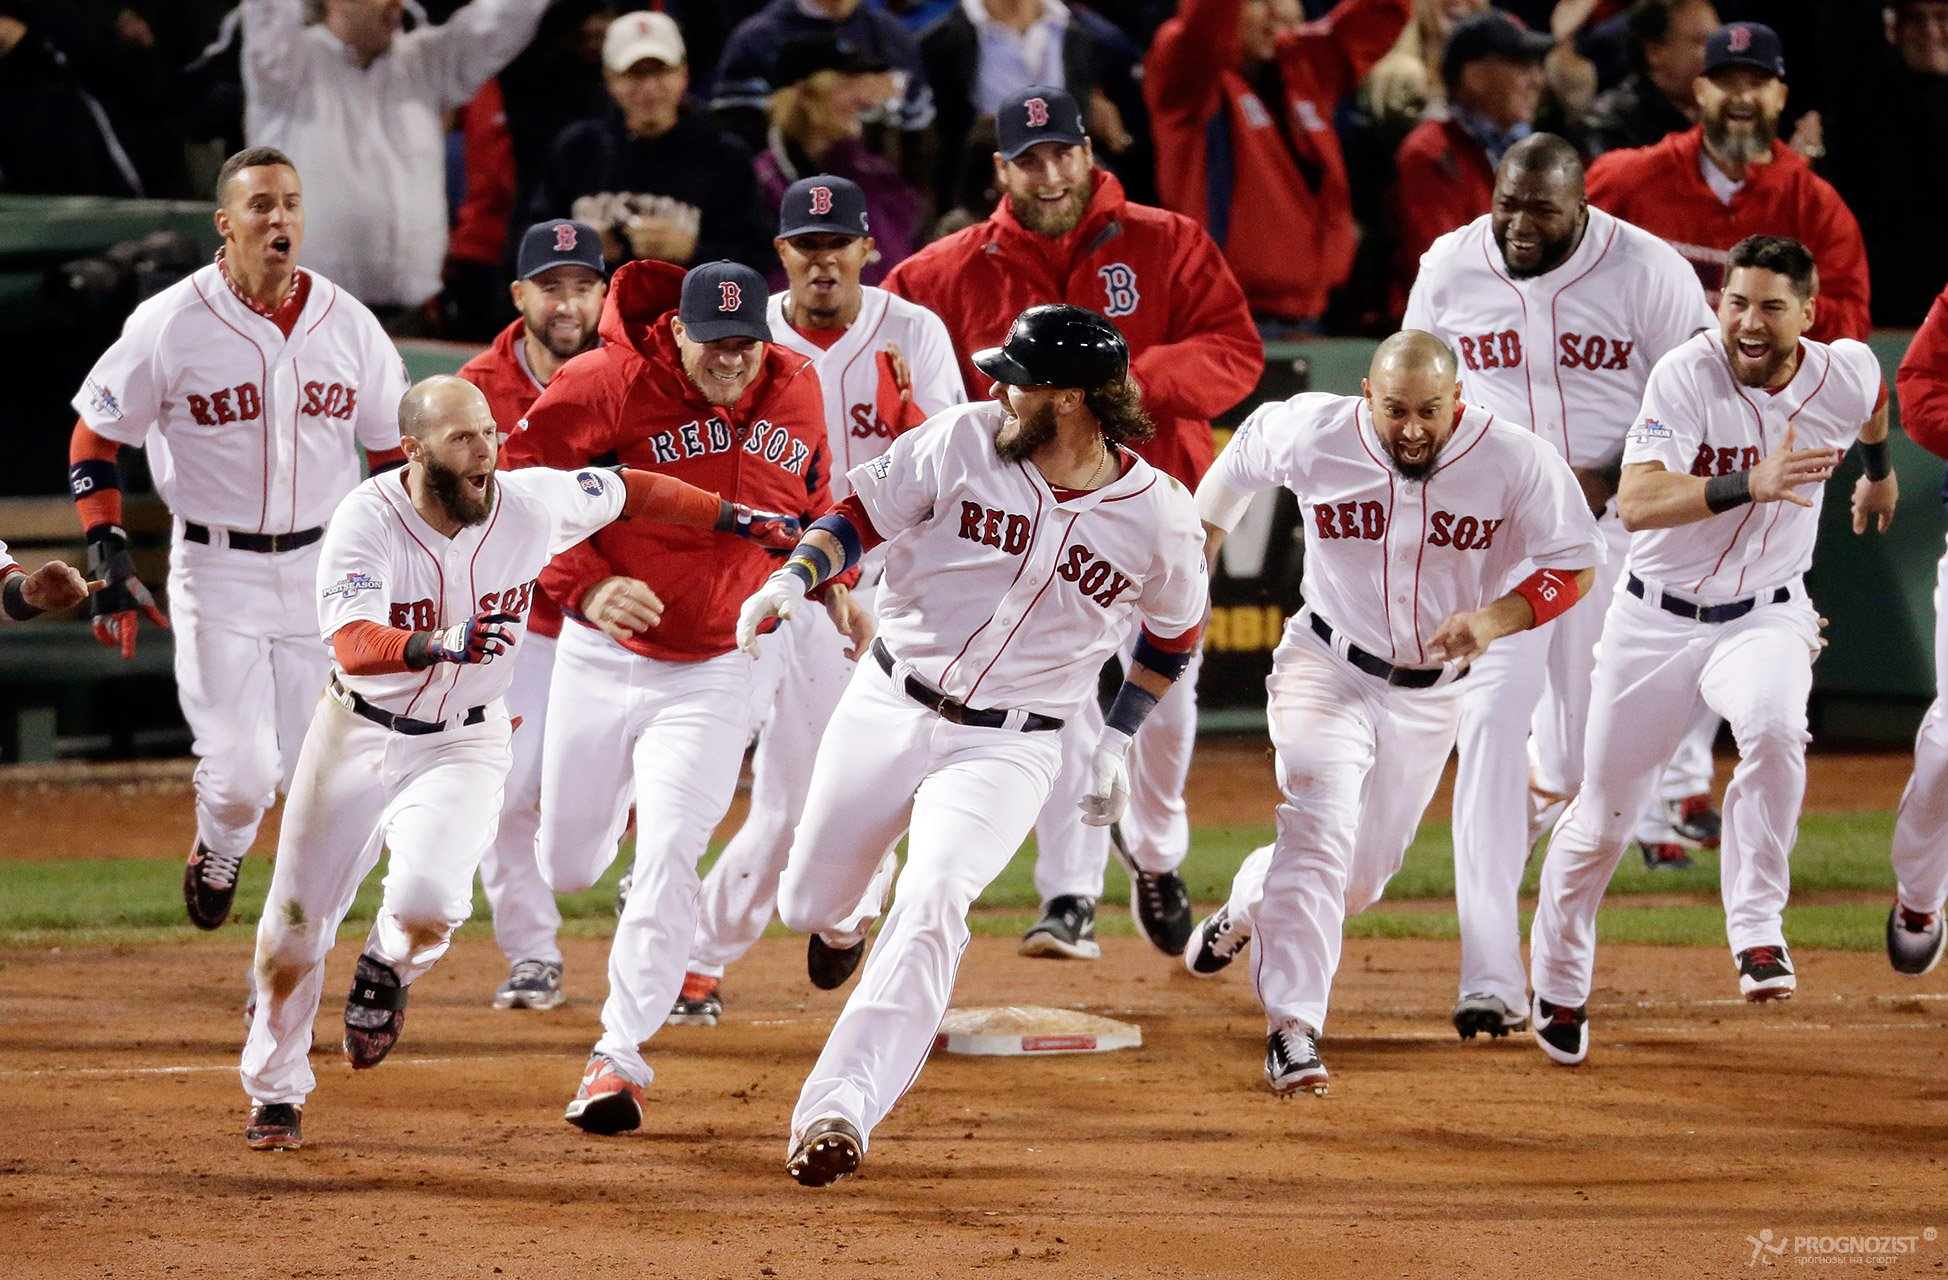 Les Red Sox de Boston Boston Red Sox en anglais sont une franchise de baseball de la Ligue majeure de baseball située à Boston Massachusetts Dans le milieu